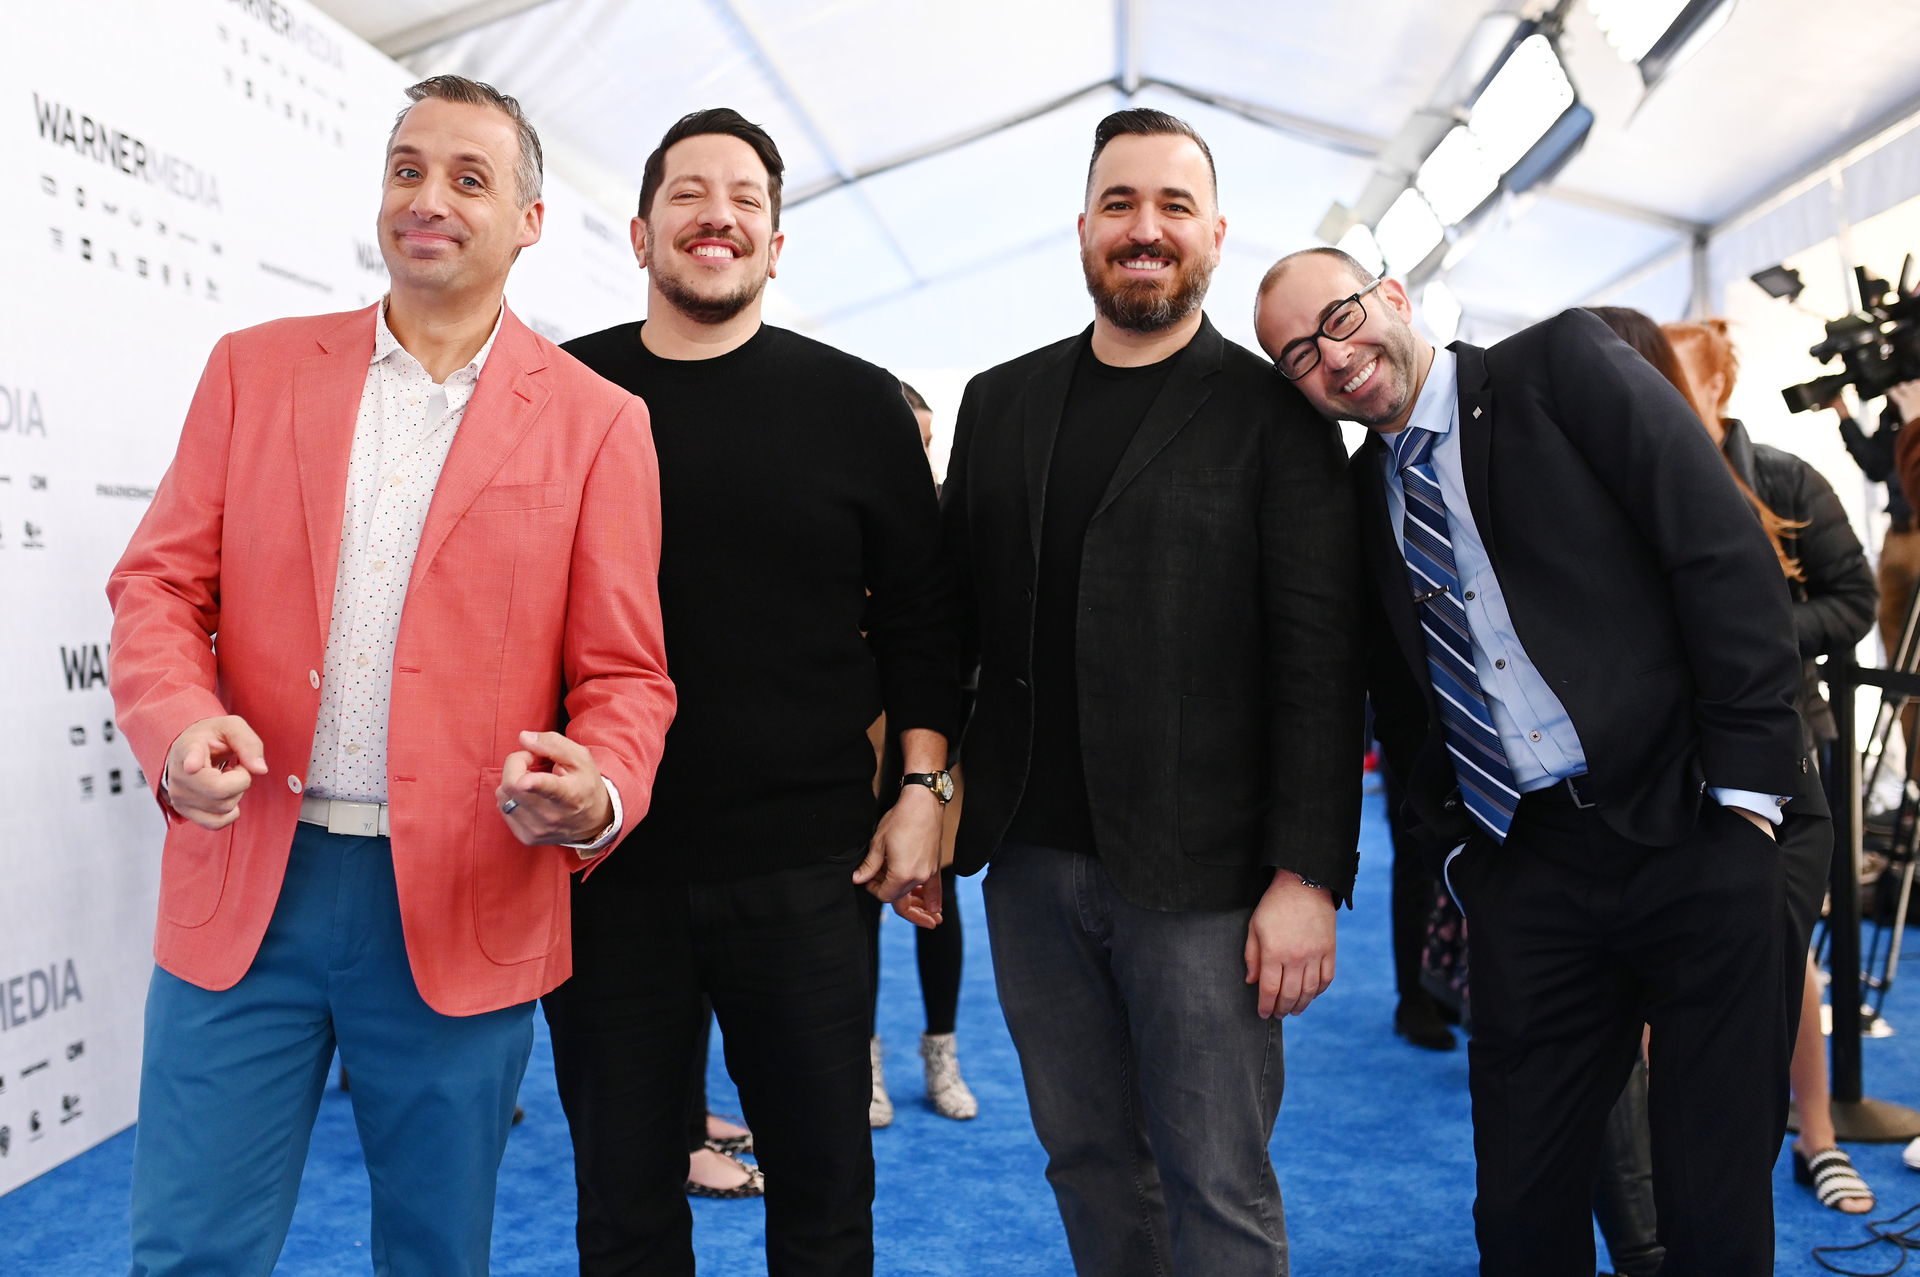 Joe Gatto, Sal Vulcano, Brian Quinn and James Murray